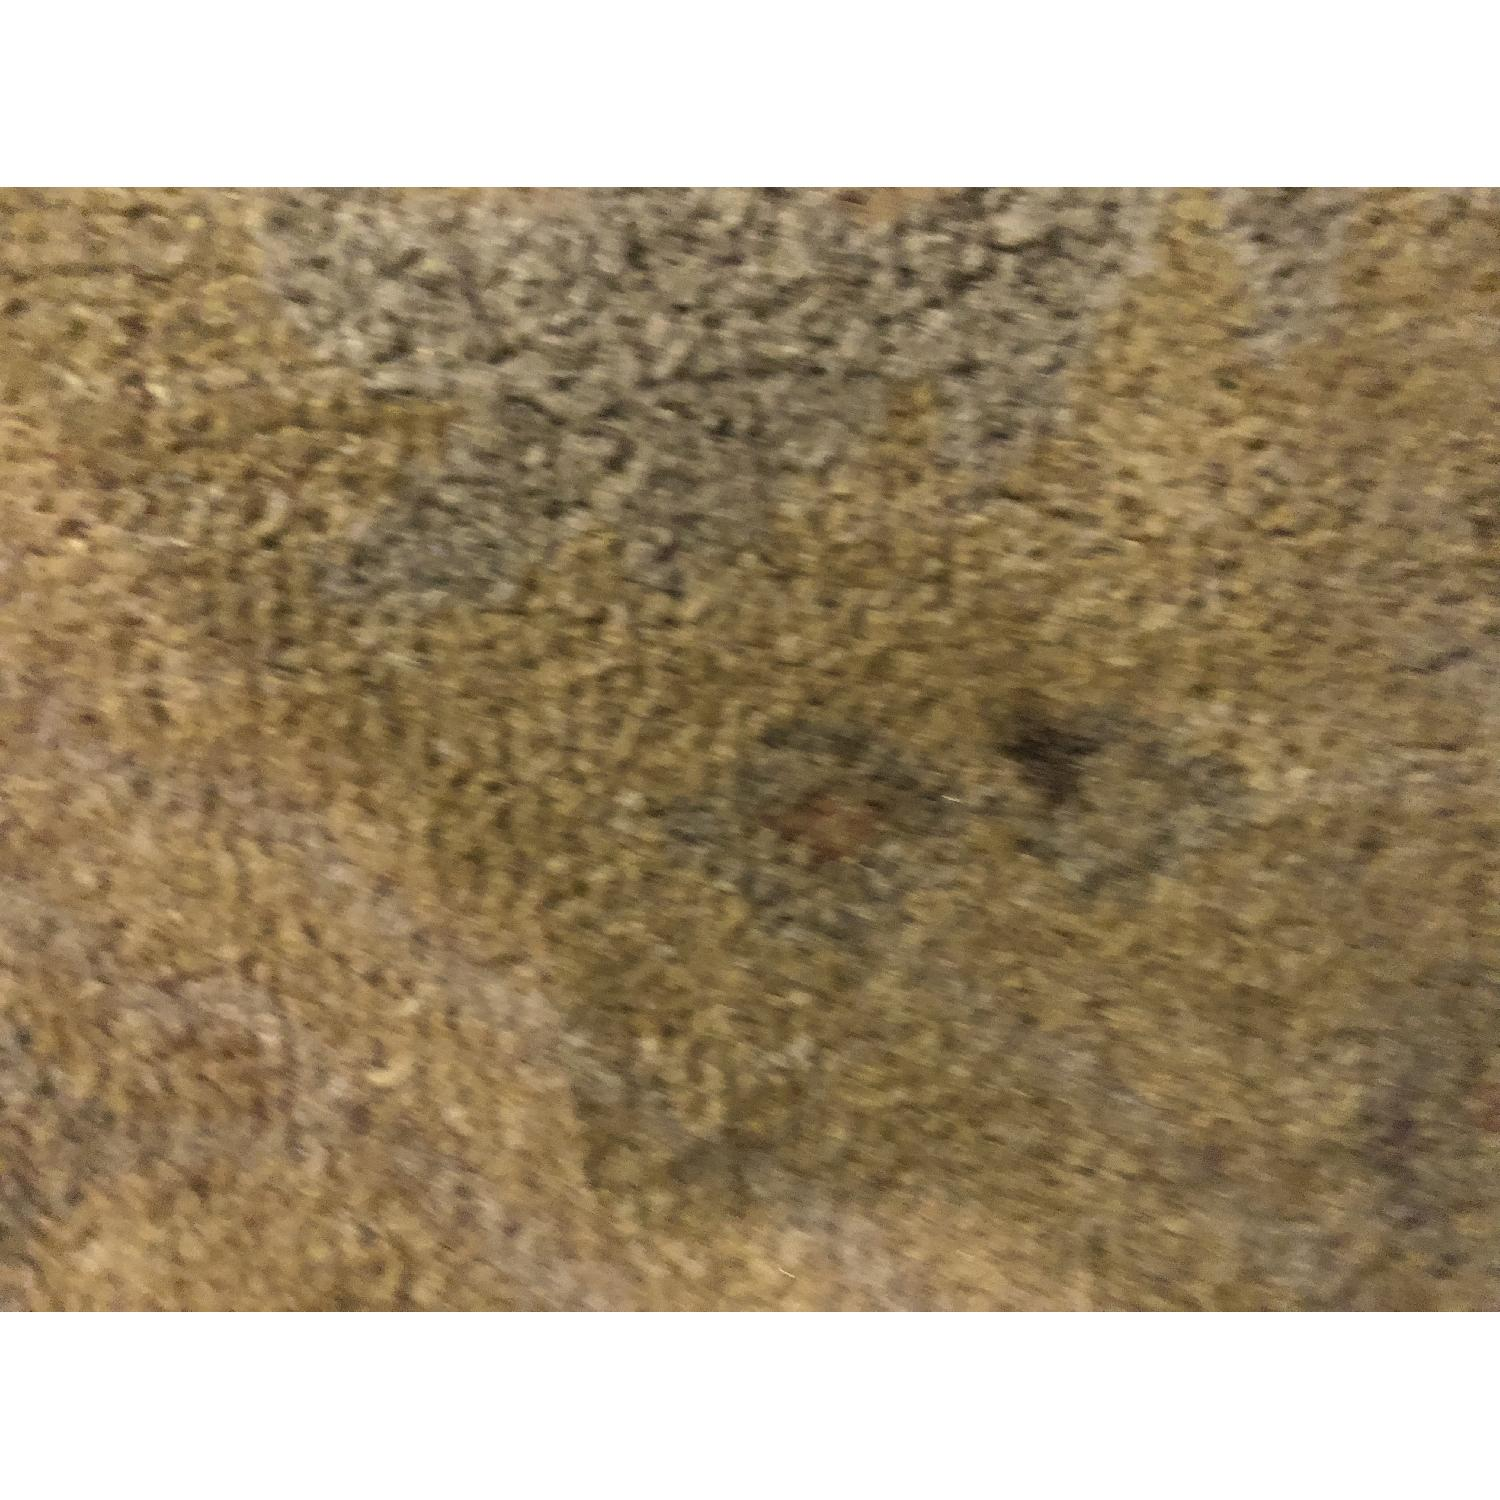 ABC Carpet and Home Beetie Classio Yellow Oriental Carpet - image-10